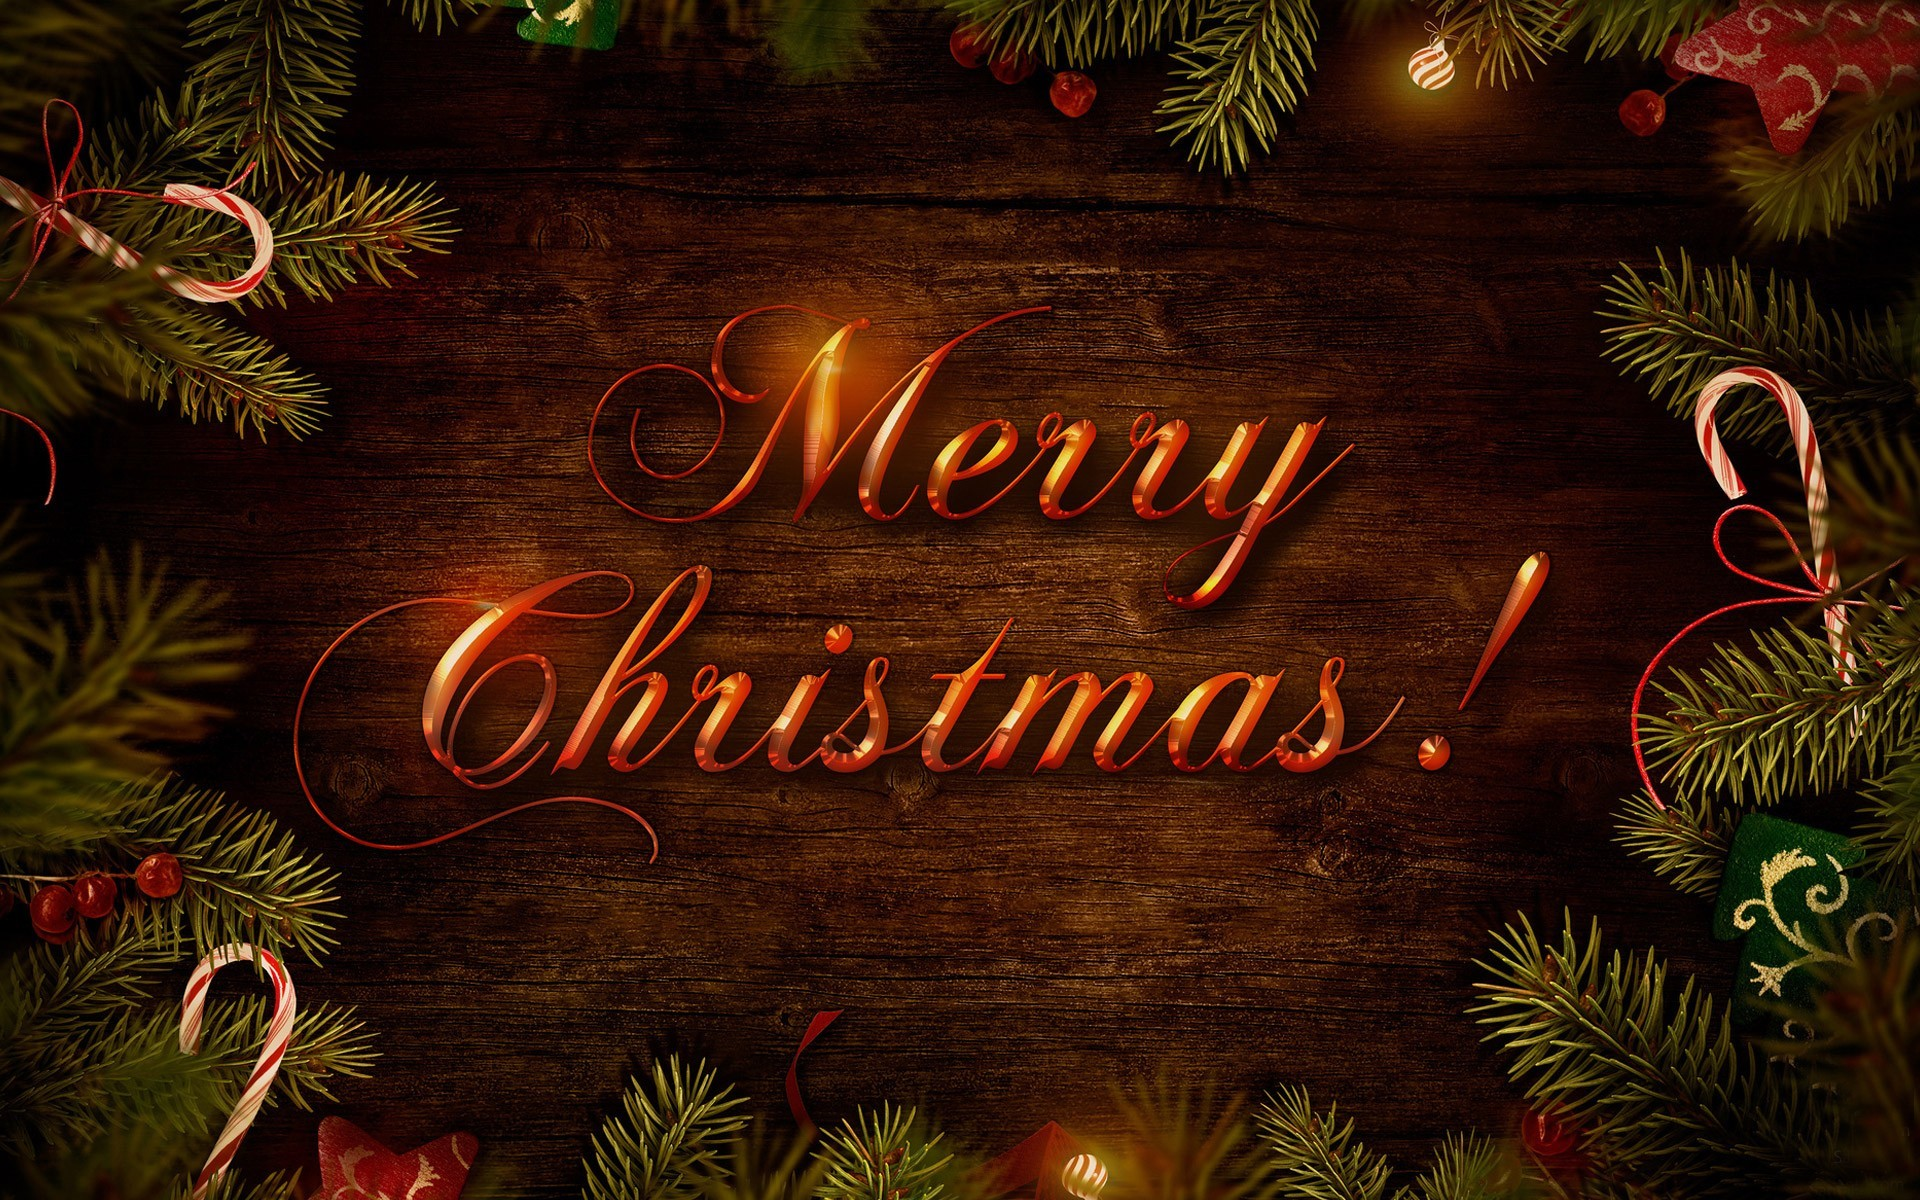 Res: 1920x1200, merry christmas wallpapers hd 2015 free download background wallpapers free  amazing cool tablet smart phone 4k high definition 1920×1200 Wallpaper HD